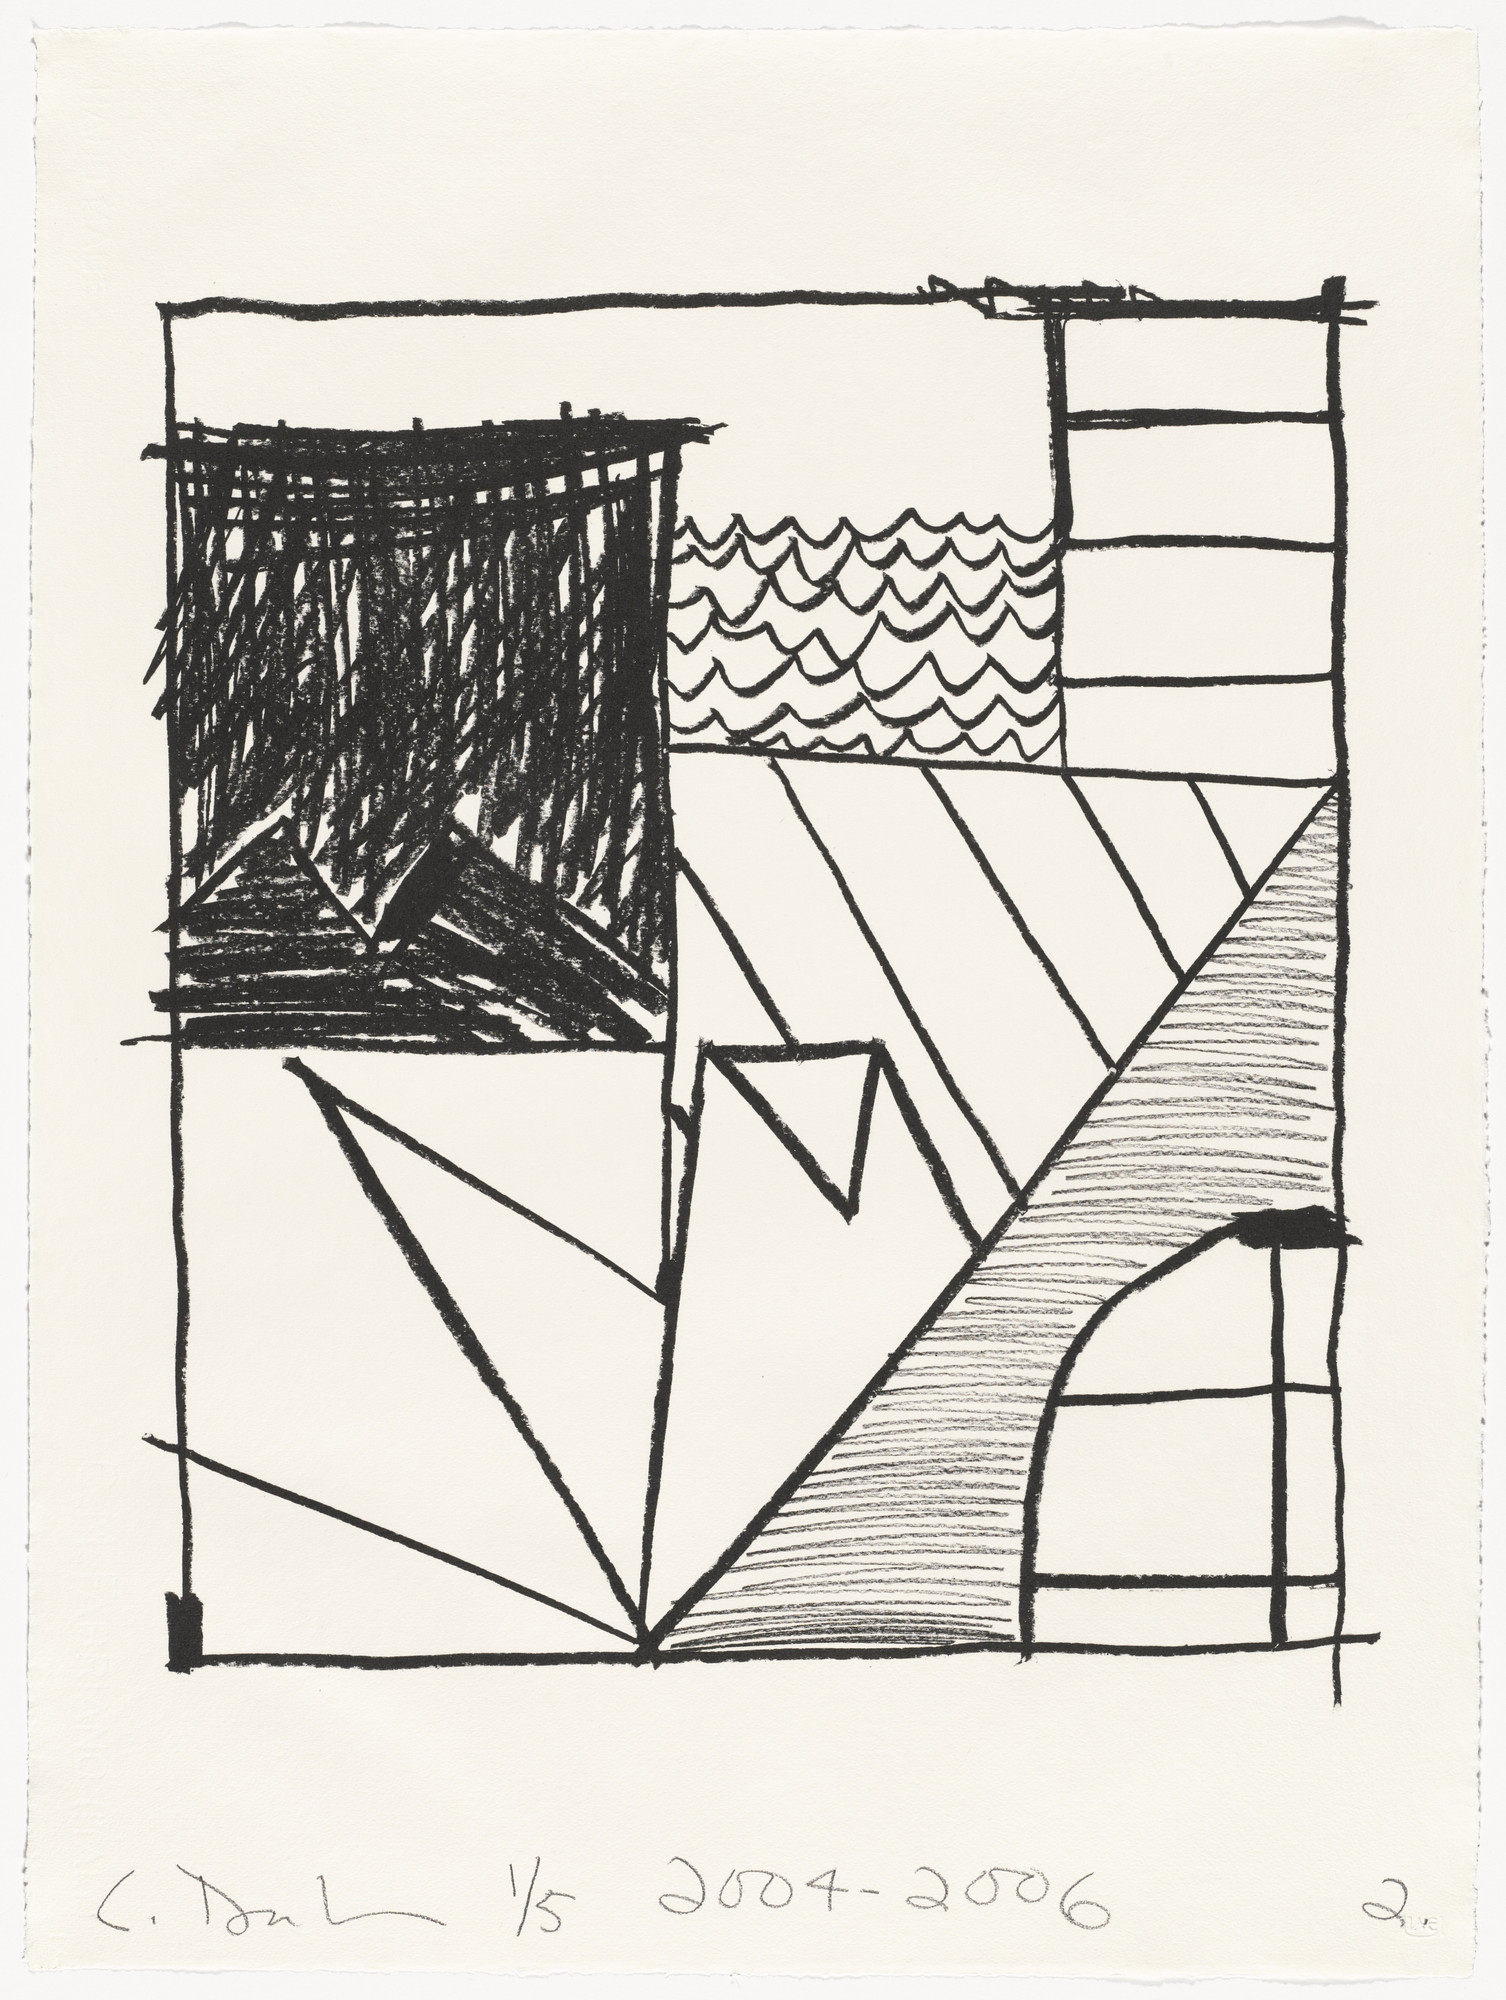 Carroll Dunham. Untitled (2) from Untitled. 2004-06